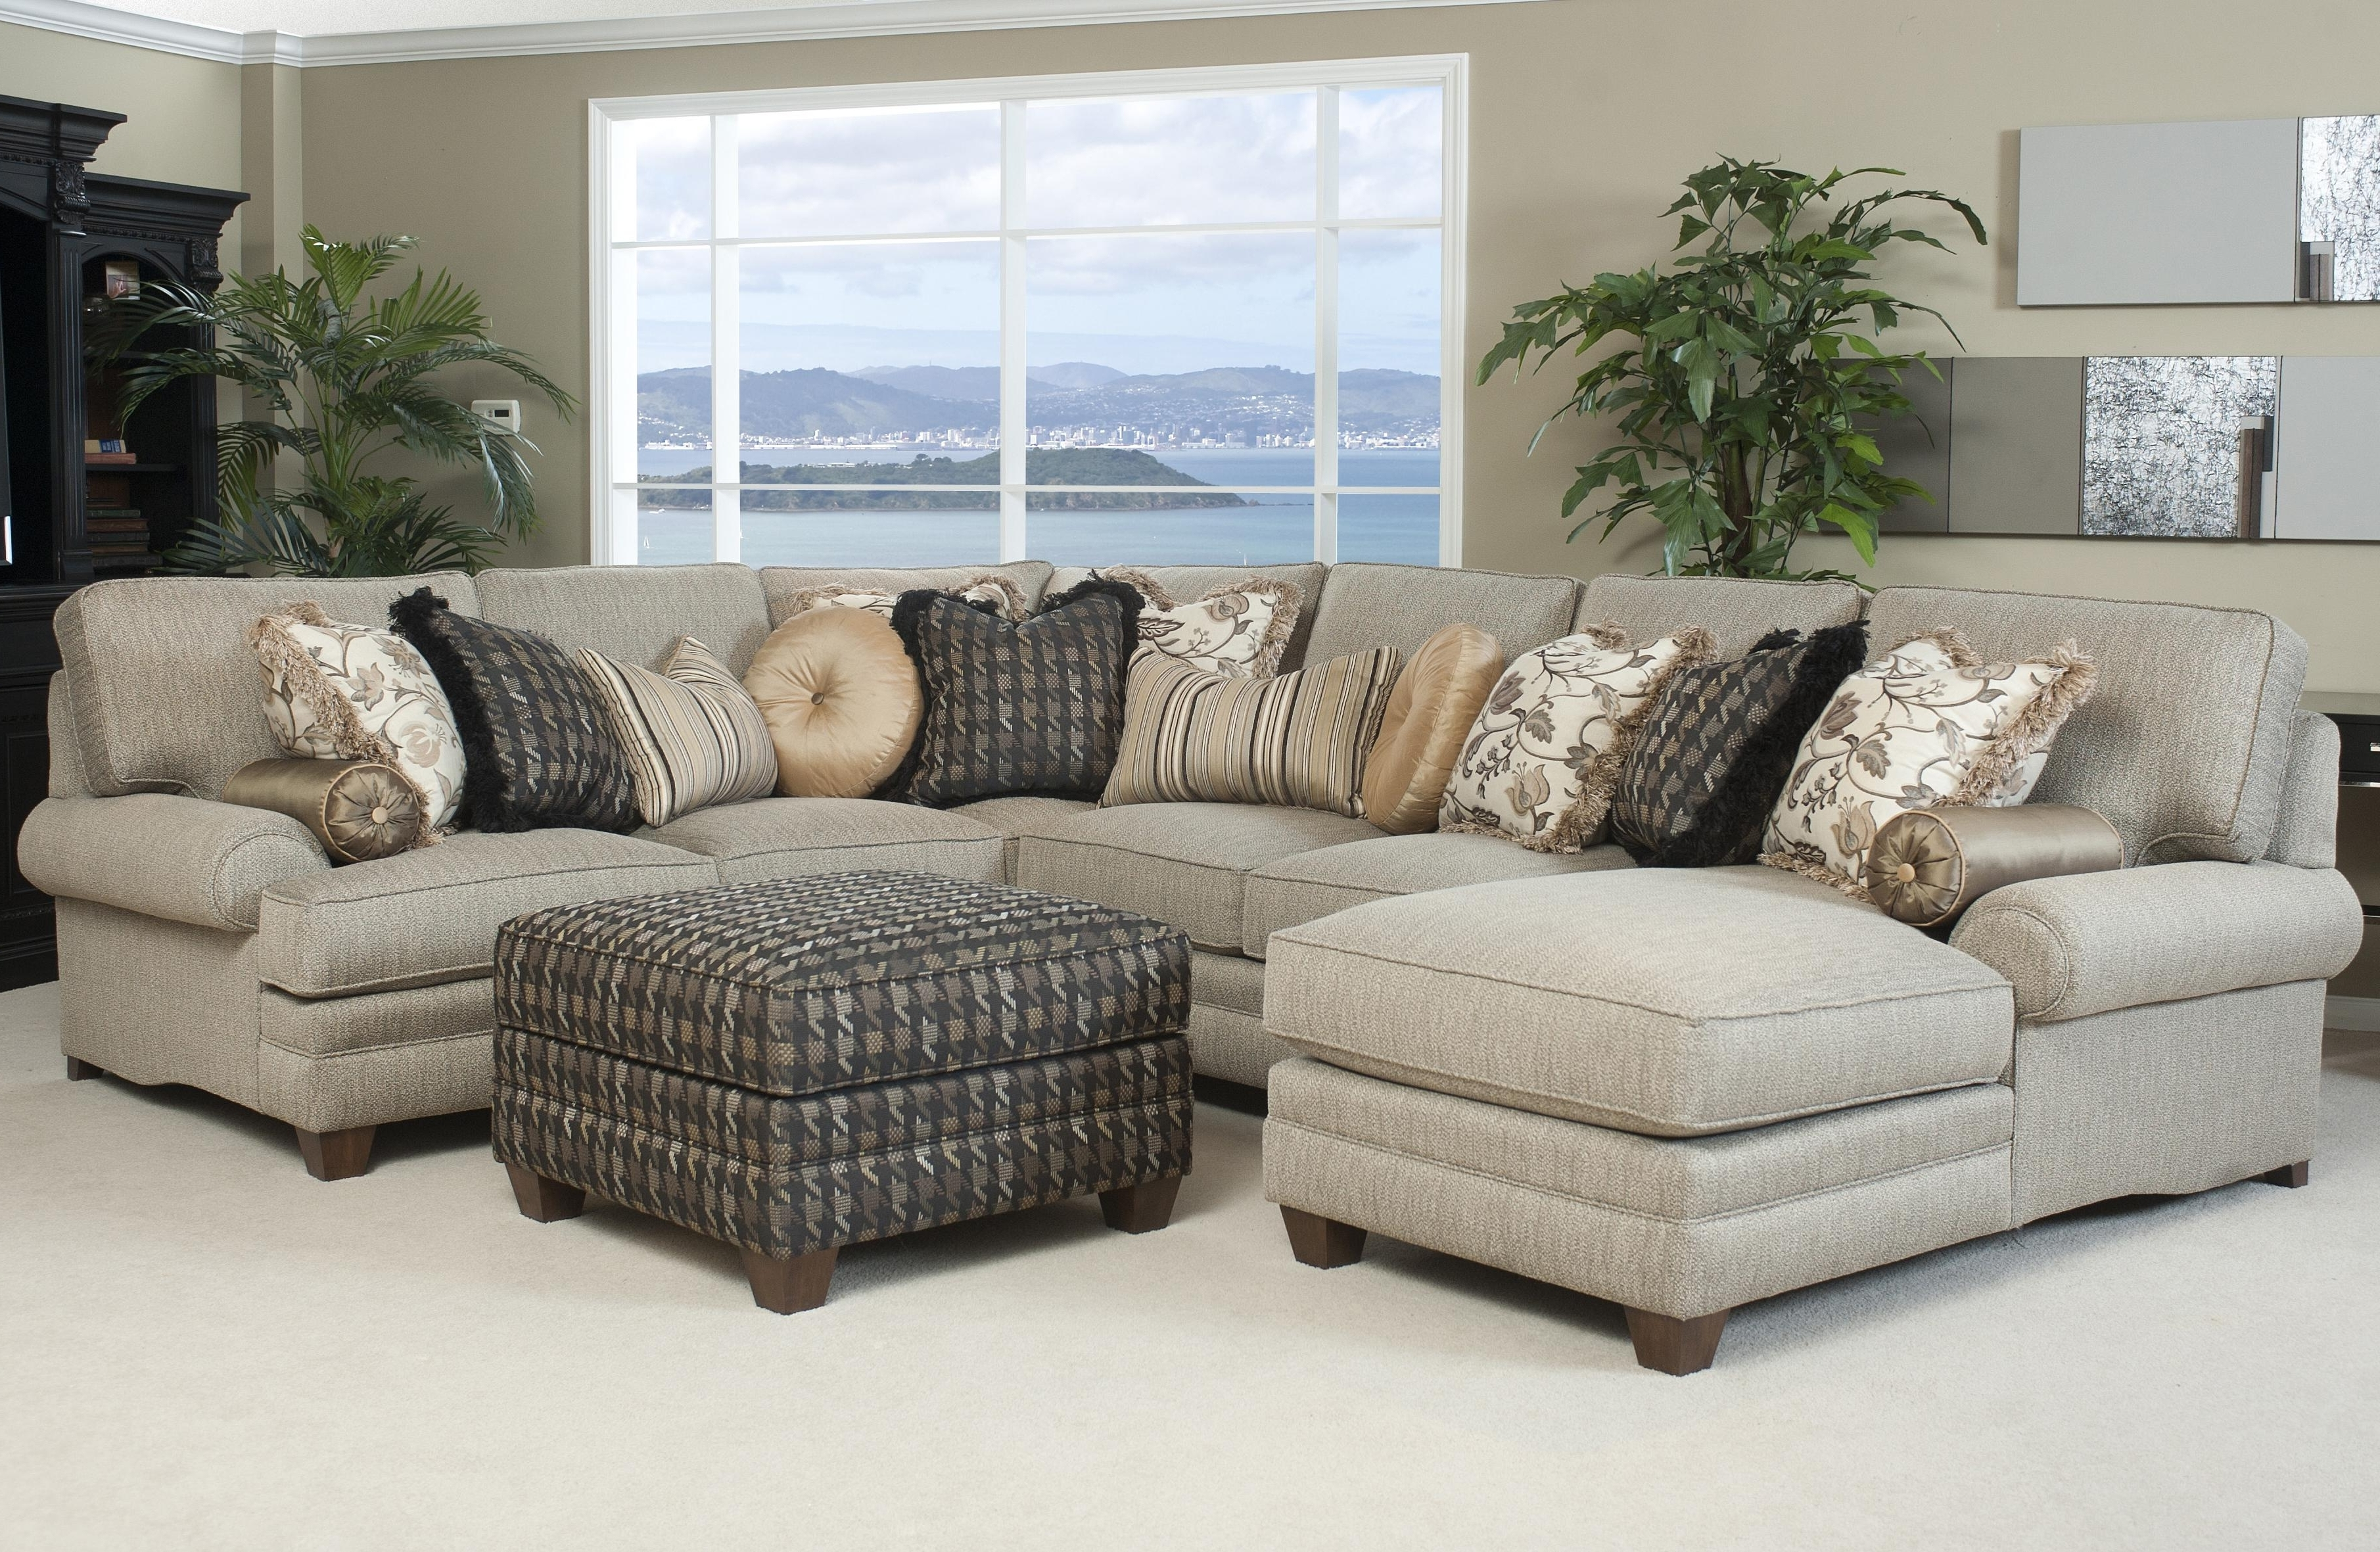 2019 Comfortable Sectional Sofas Inside Most Comfortable Leather Sectional Sofa • Leather Sofa (View 3 of 20)